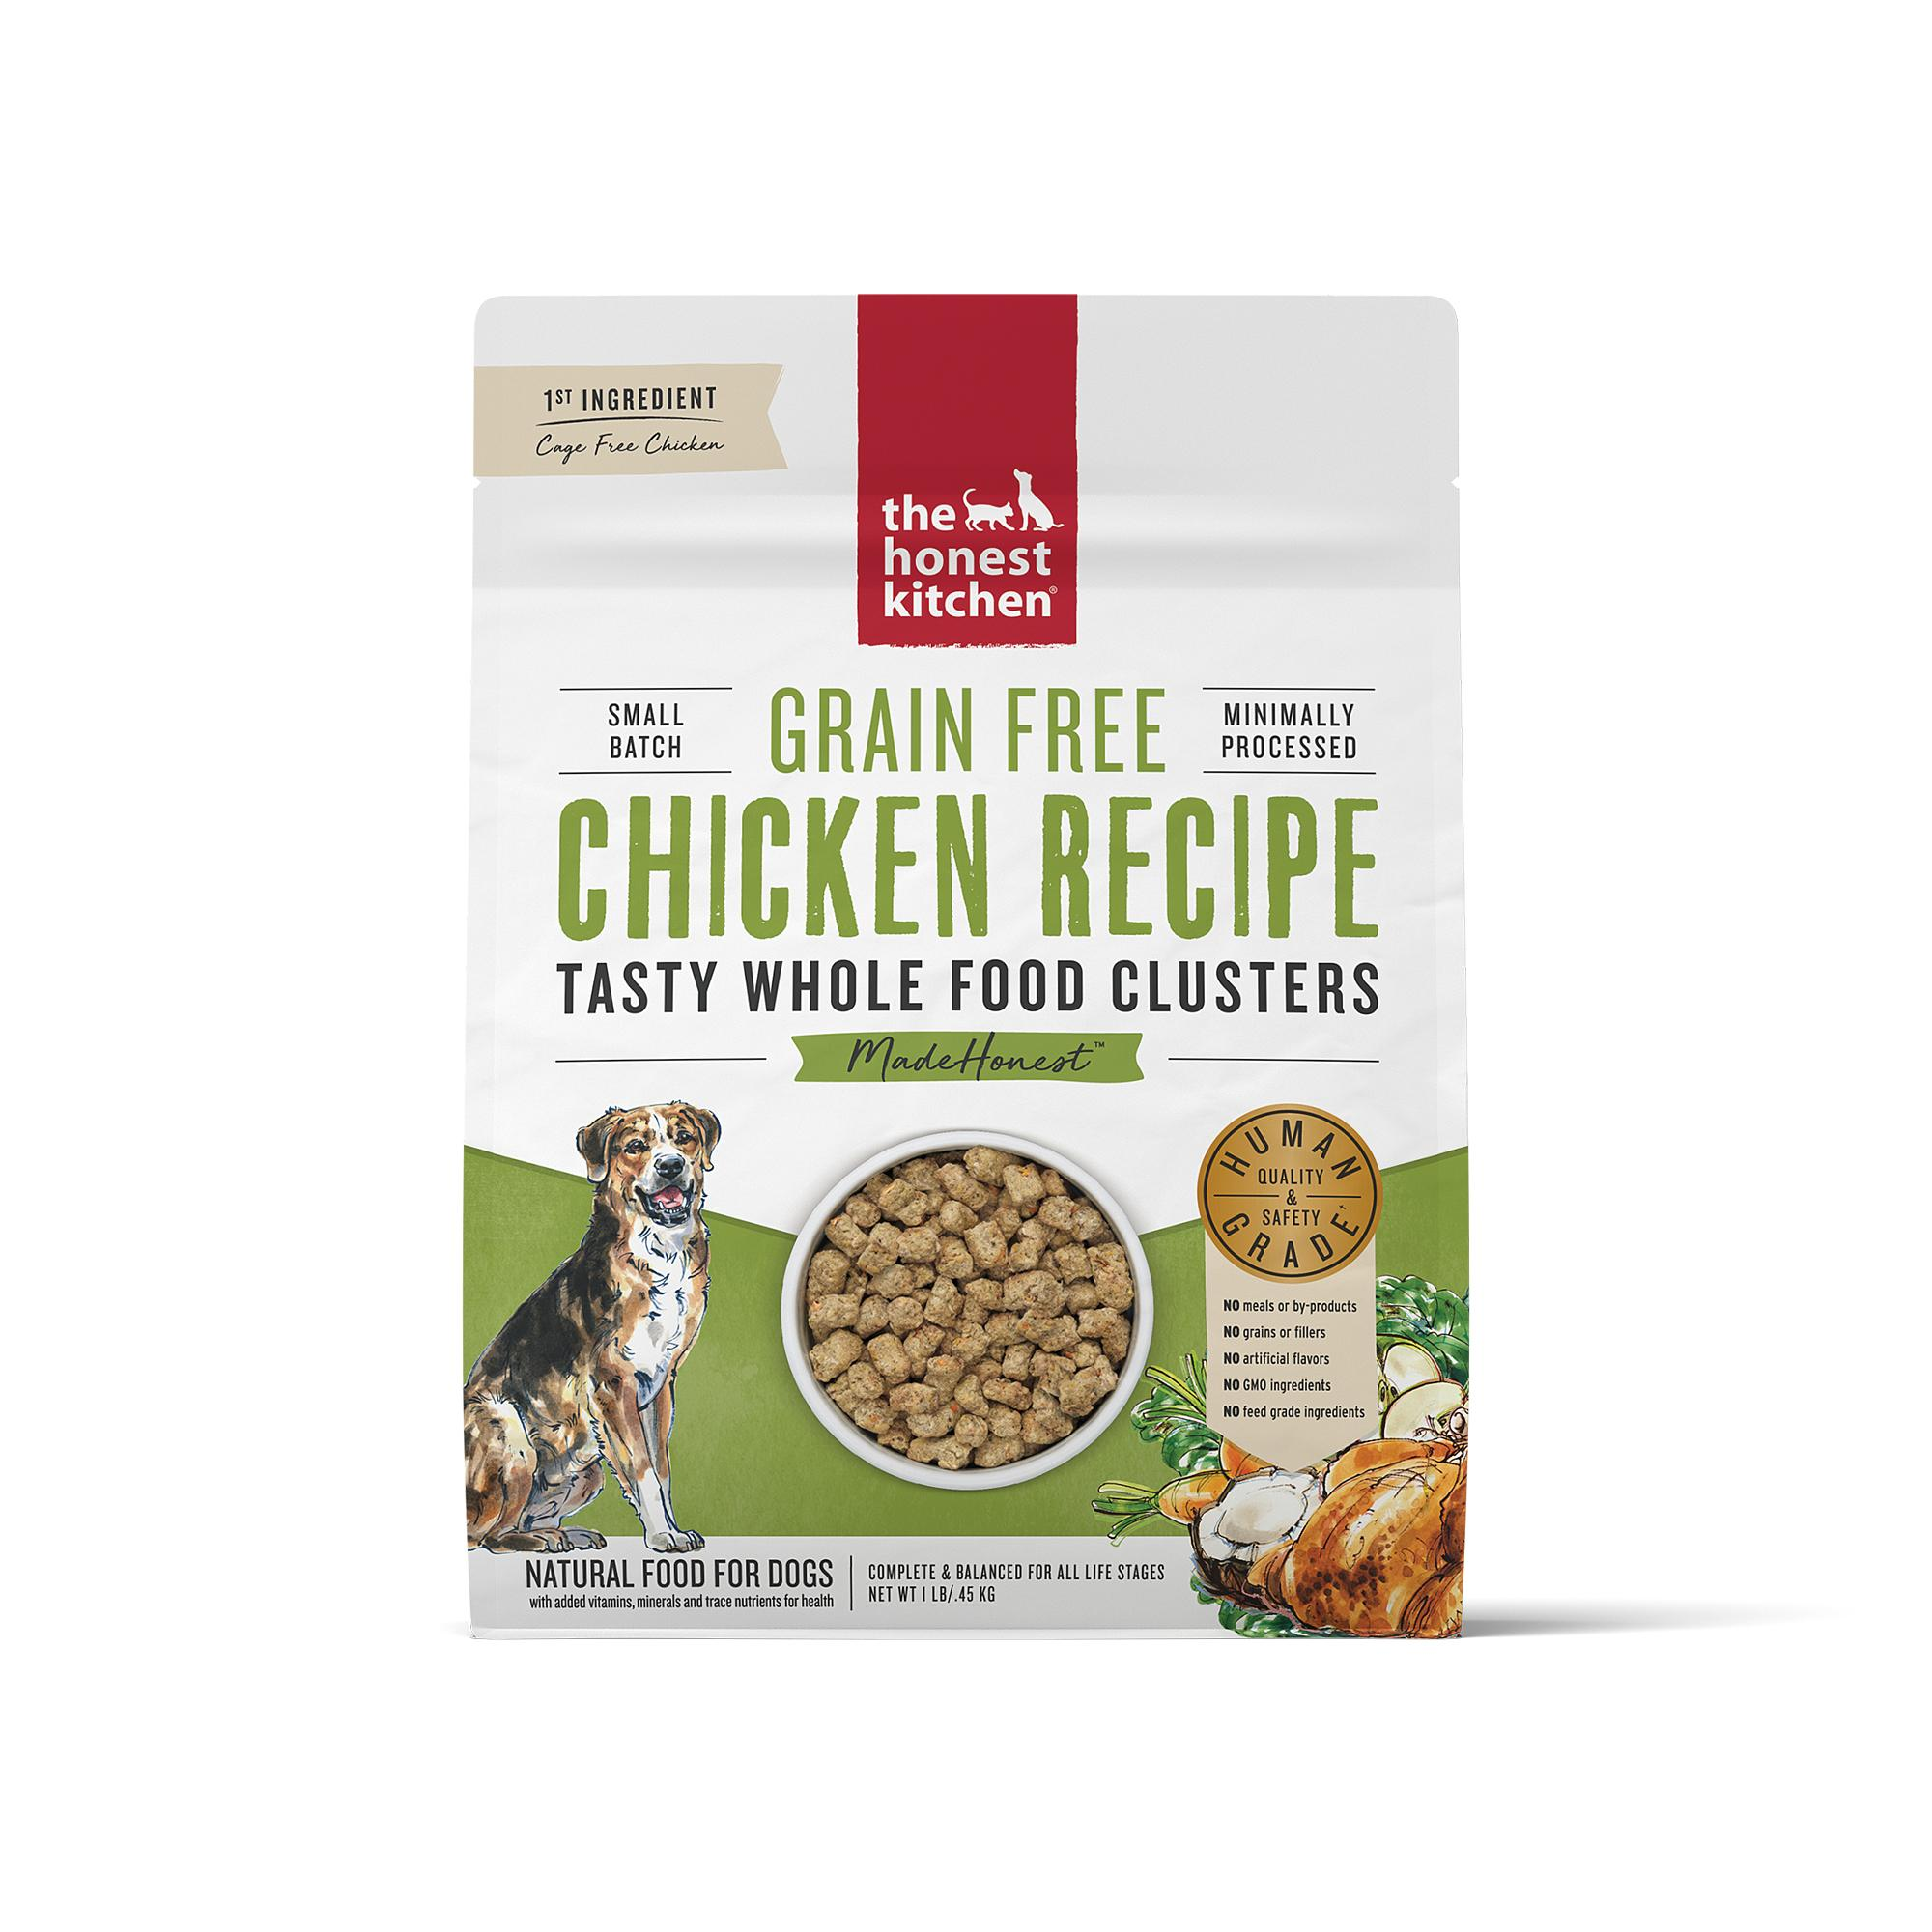 The Honest Kitchen Whole Food Clusters Chicken Grain-Free Dry Dog Food Image